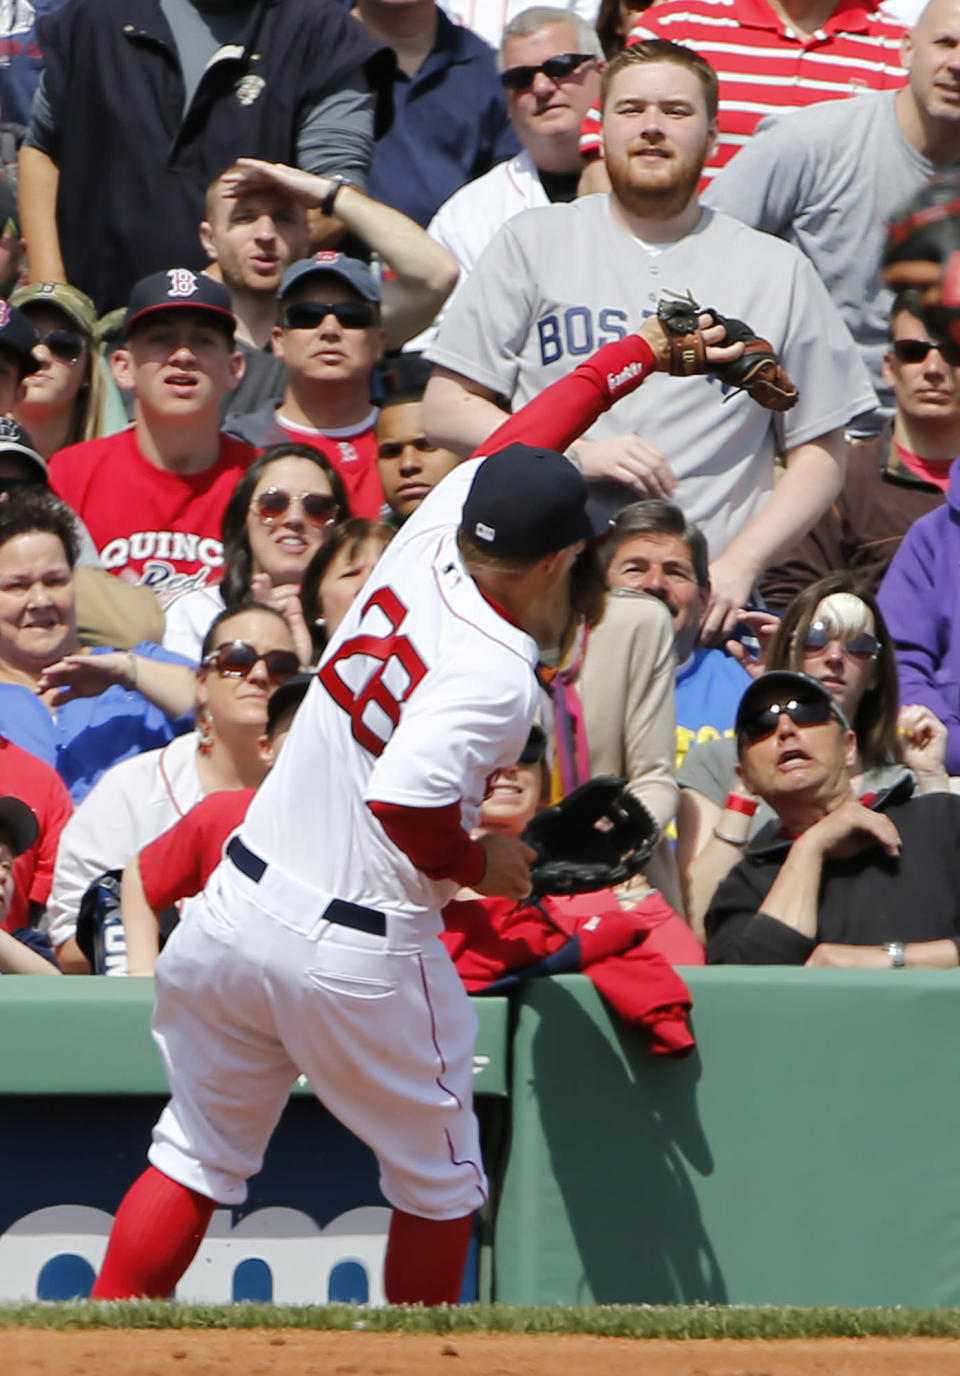 Boston Red Sox third baseman Brock Holt can't get to a foul ball off the bat of Baltimore Orioles' Nick Markakis during the third inning of a baseball game at Fenway Park in Boston Monday, April 21, 2014. (AP Photo/Winslow Townson)